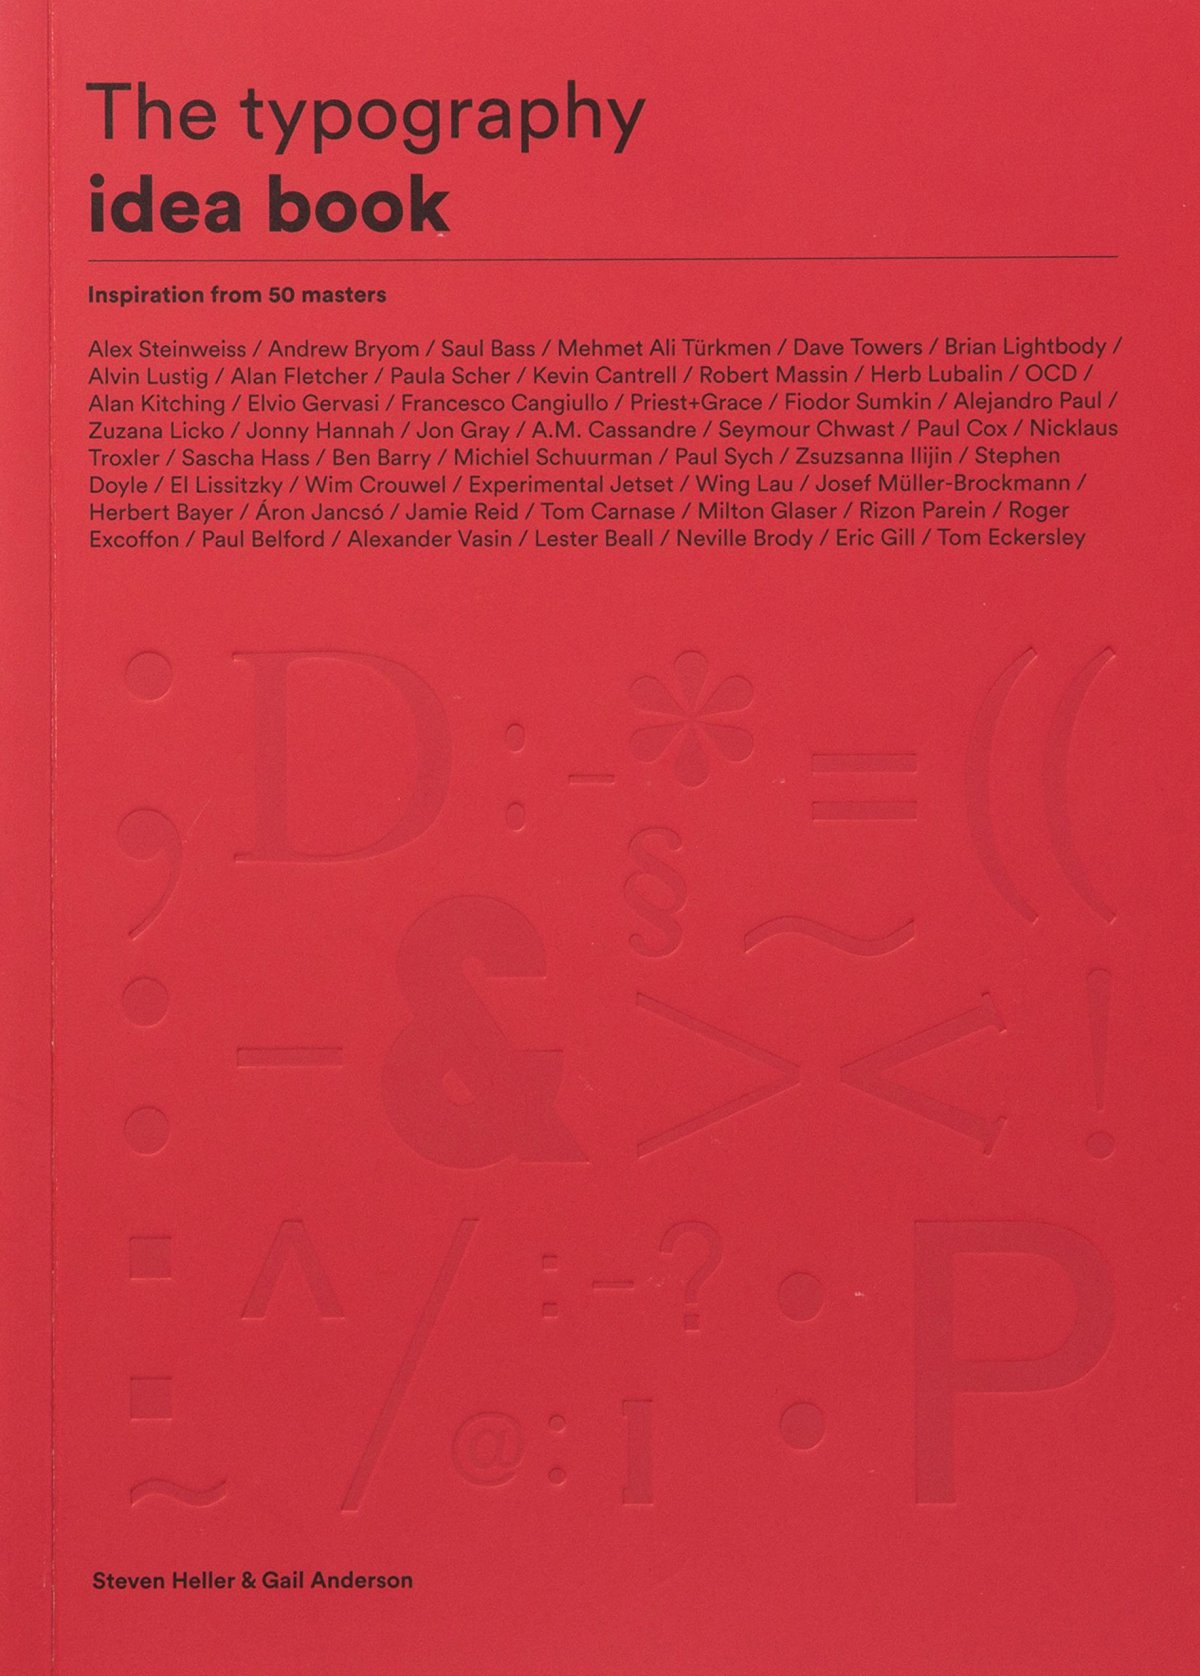 The typography idea book, Laurence King, 2016